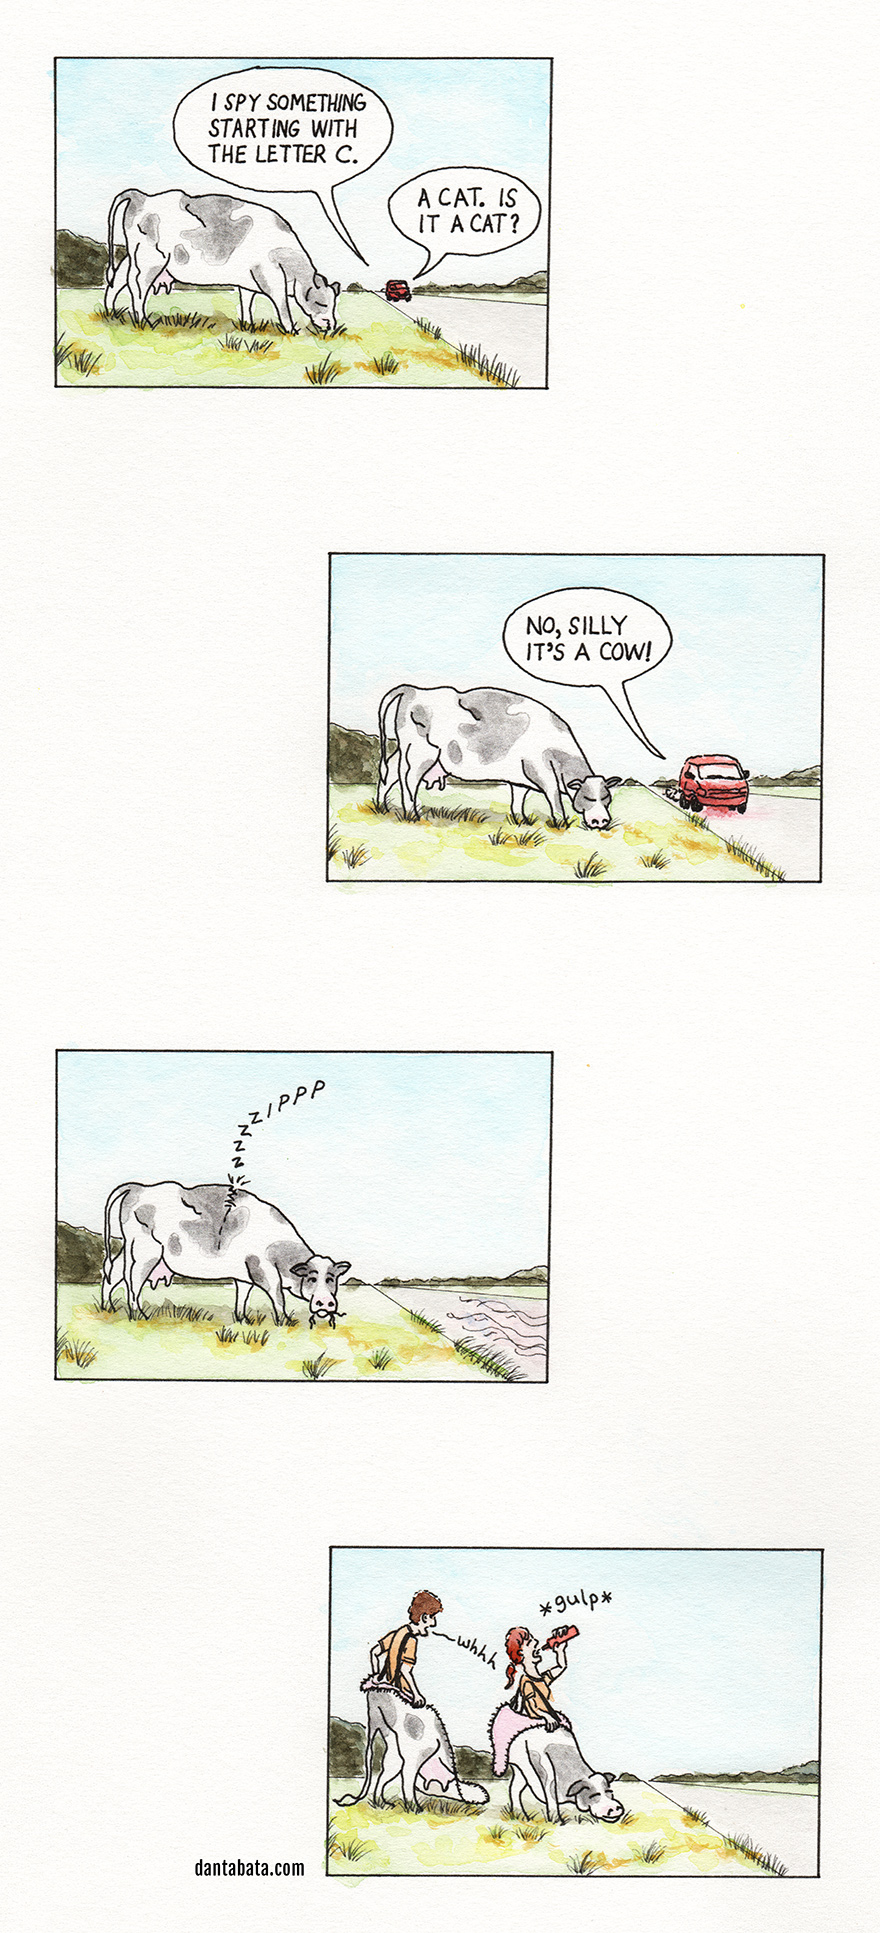 a comic featuring a cow, a car and a guessing game